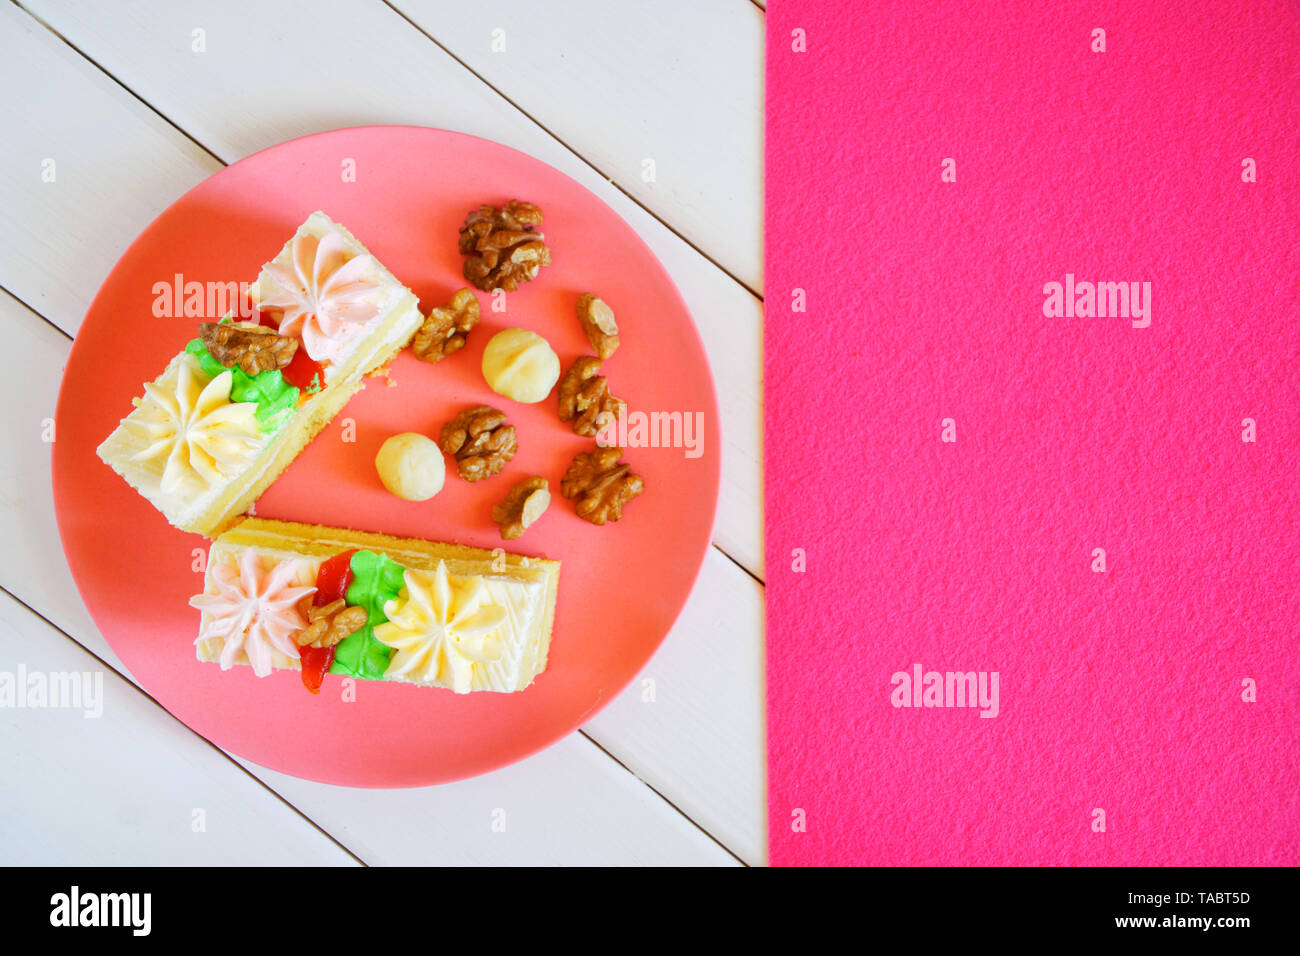 Slices of sponge cake with cream decorations, macadamia nuts and walnuts in a plate on a white and pink background. Wooden table and tablecloth. Dayli - Stock Image